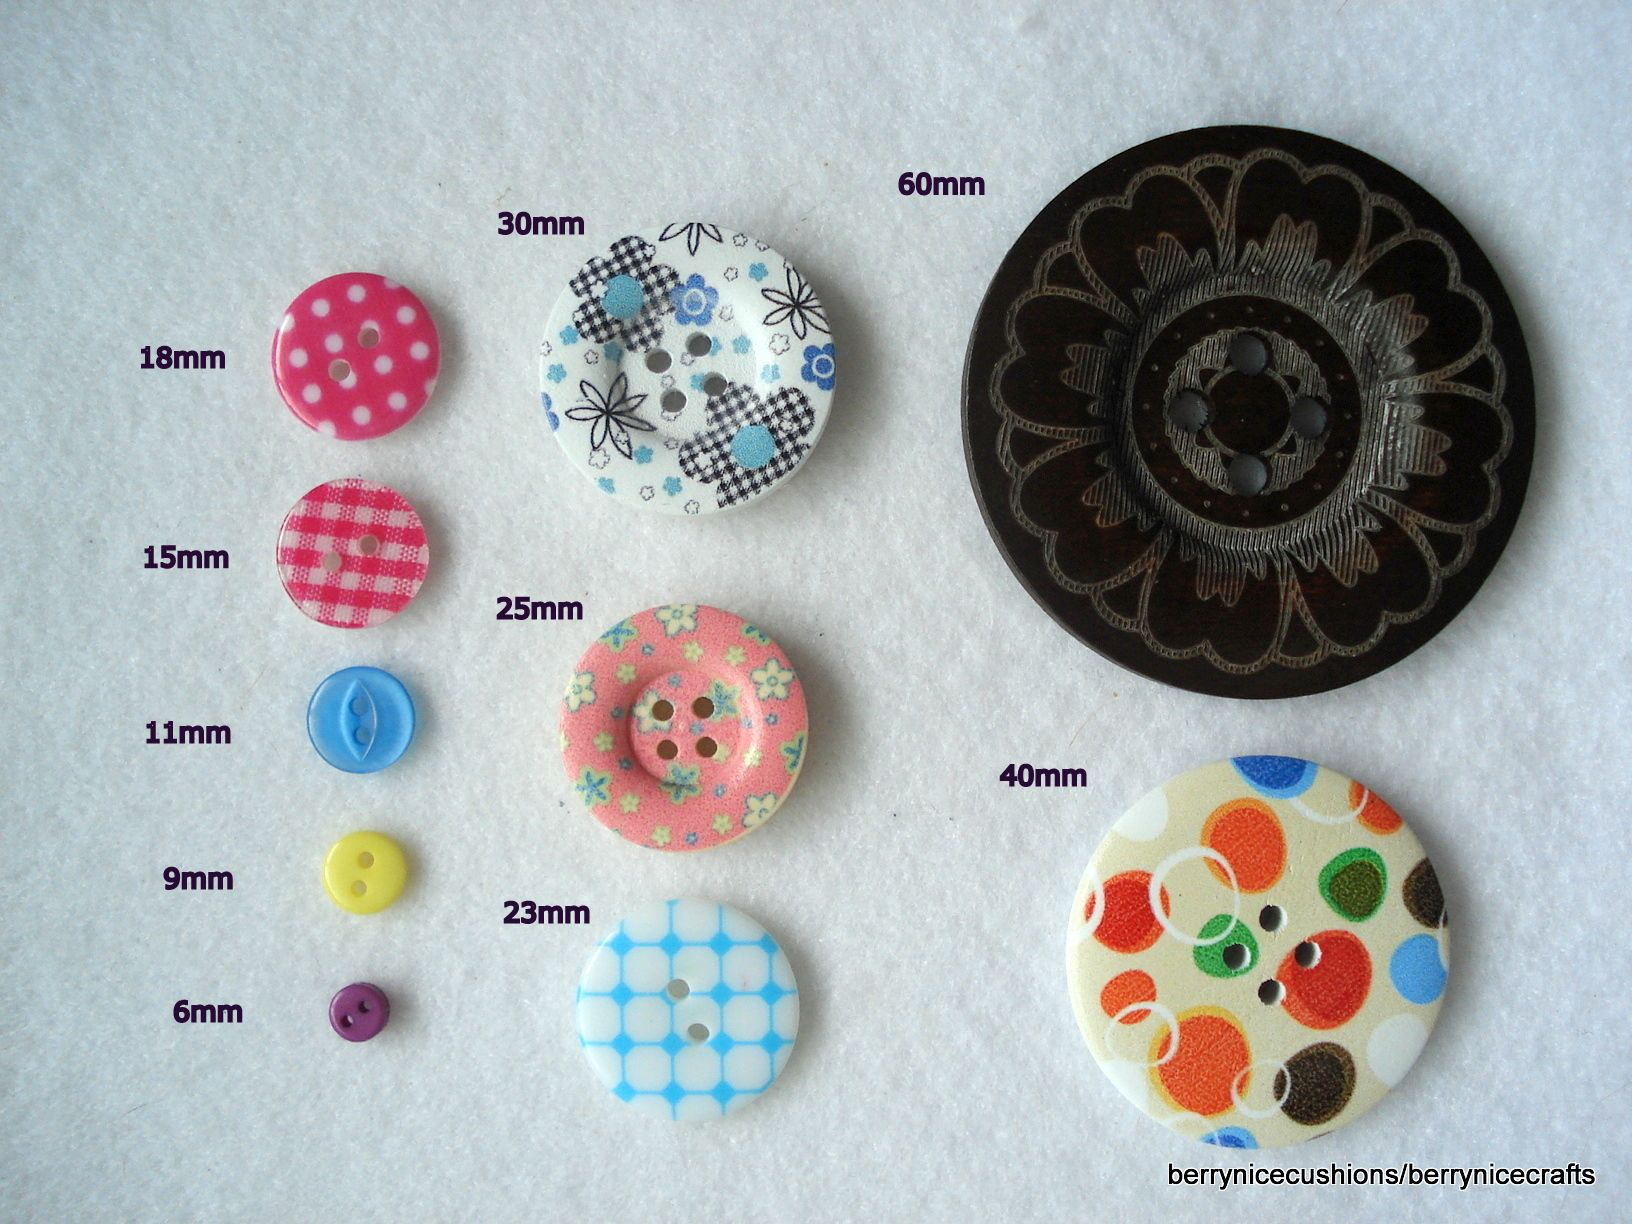 3mm Thick Craft 20 x 20mm Black Resin Buttons Large 4 Holes 2mm Wide